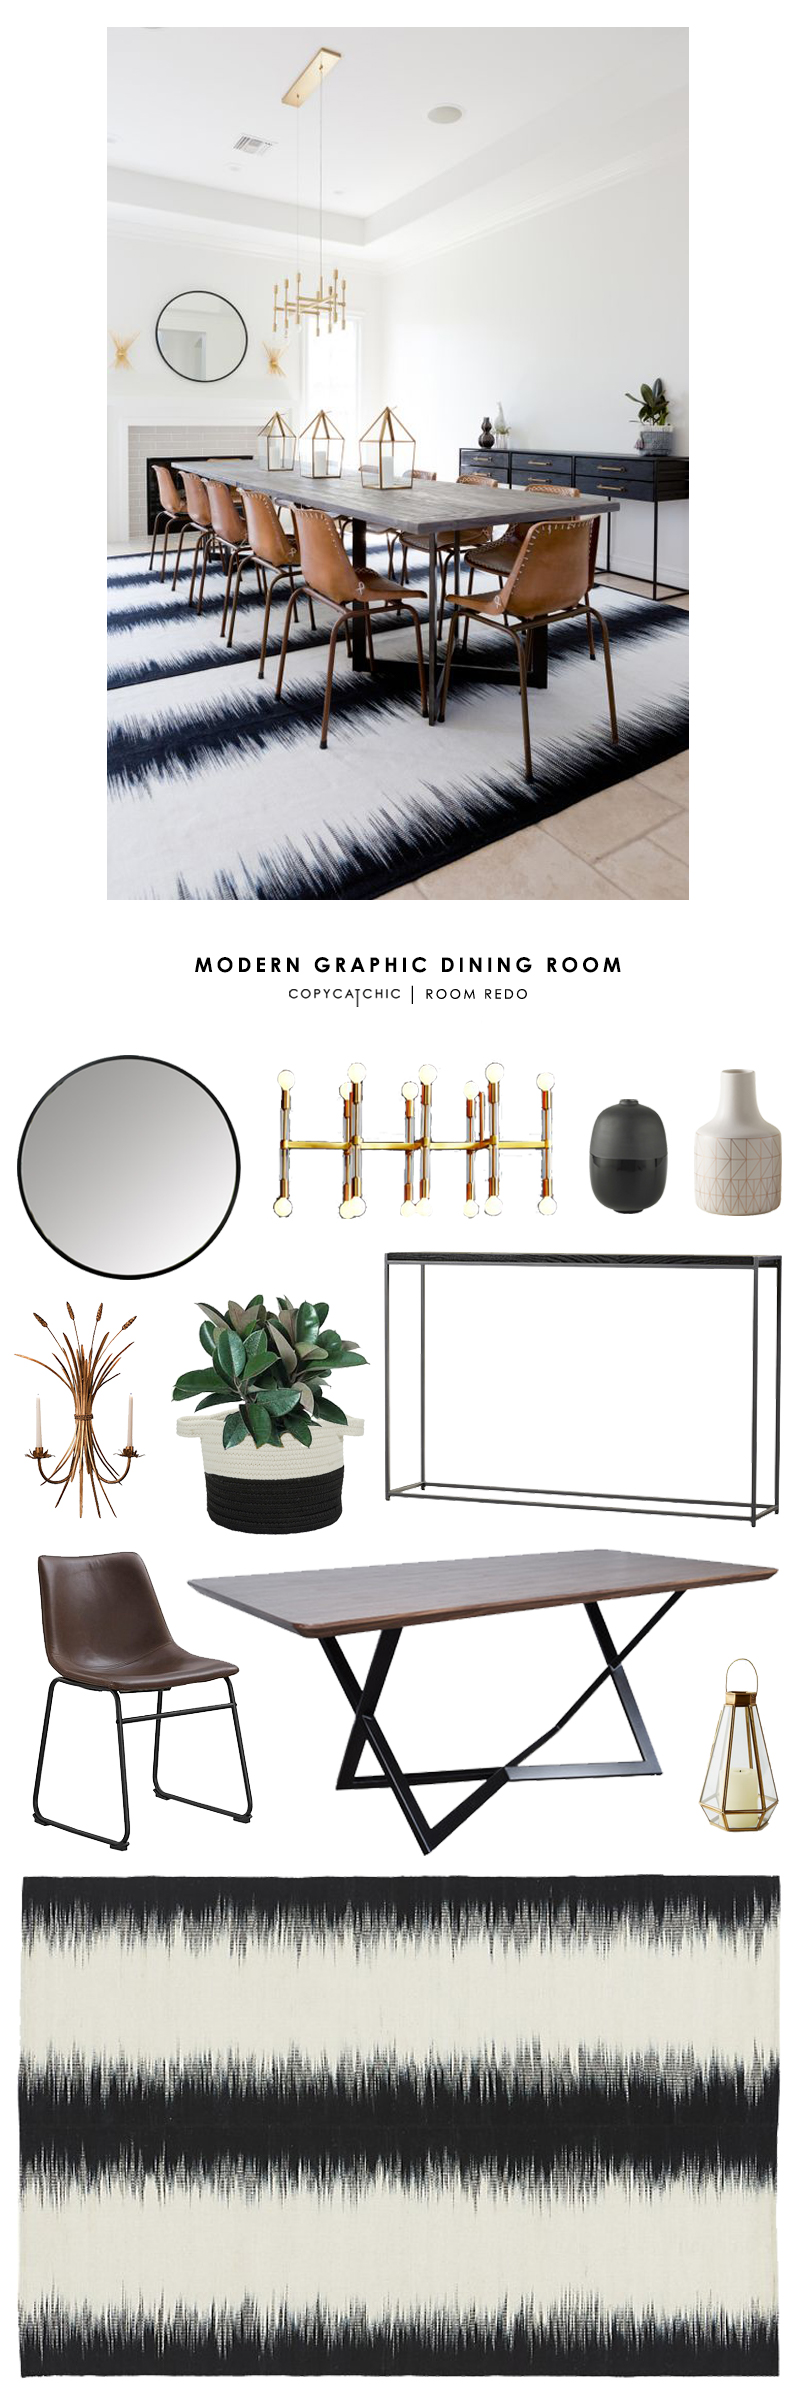 Copy Cat Chic Room Redo Modern Graphic Dining Room